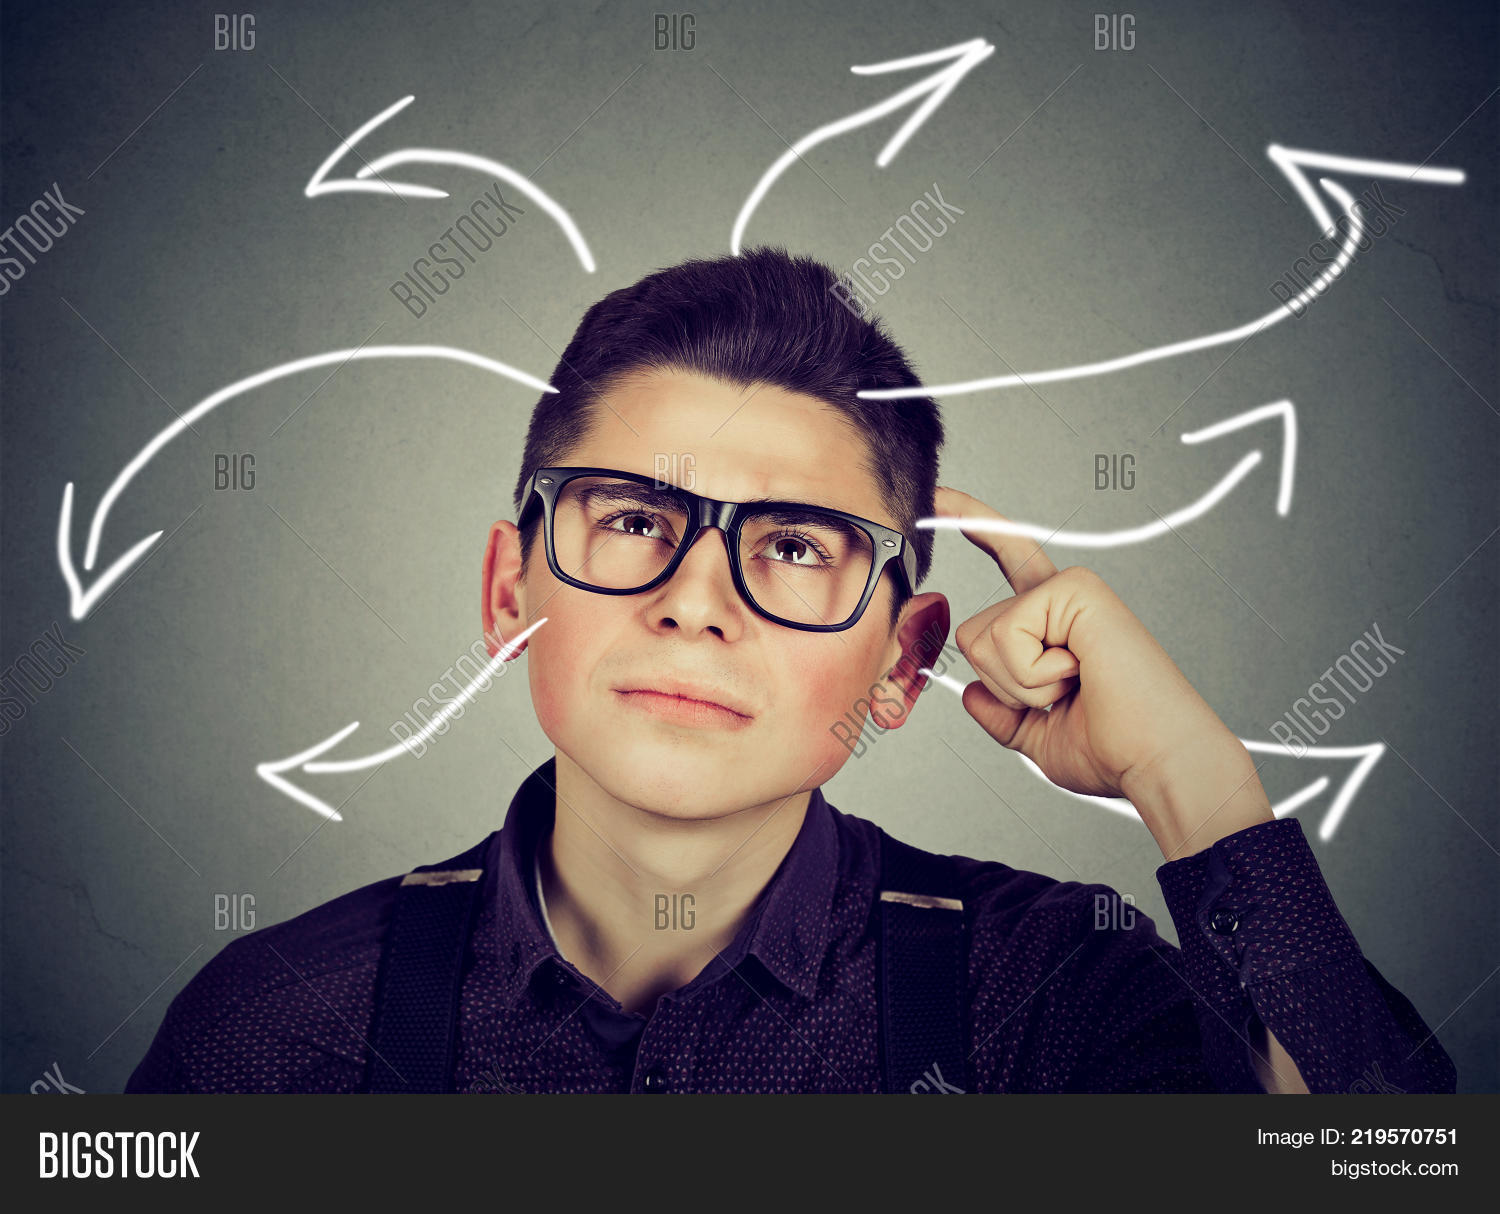 adhd,answers,anxiety,anxious,arrows,ask,boy,brainy,business,businessperson,career,chaos,choice,choosing,compliance,confused,contemplate,decisions,difficult,doubt,education,entrepreneur,expression,face,glasses,guy,head,hispanic,idea,latin,man,mind,mindfulness,occupation,pensive,people,perplexed,problem,puzzled,quest,questions,risk,smart,start,student,think,vision,way,worries,young